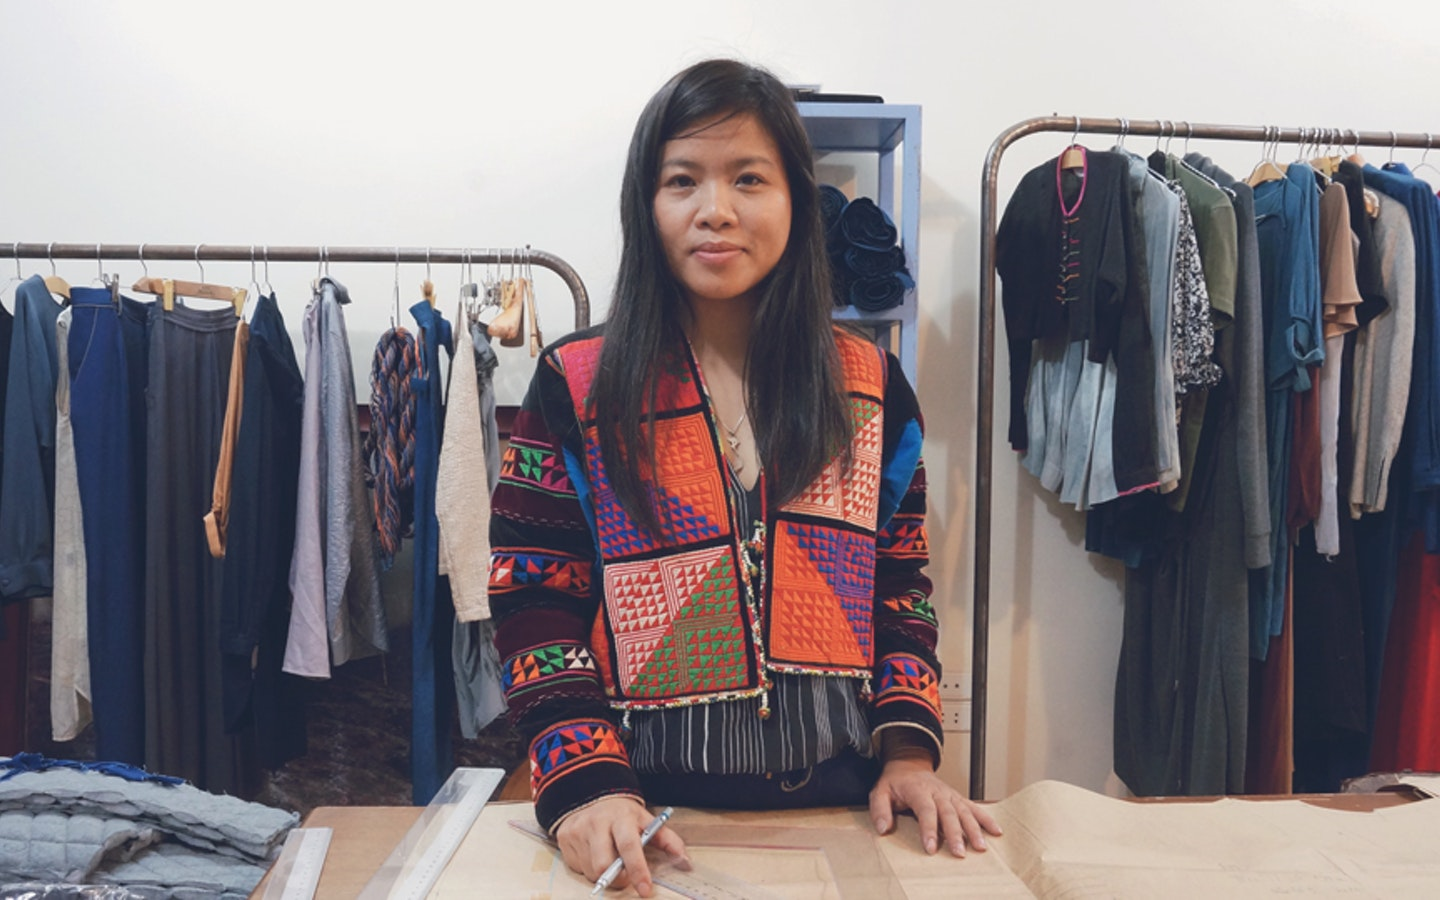 Meet Thao, Vietnam's leading textile  designer. She teaches  traditional Vietnamese techniques for natural dyeing, and beeswax printing with natural dyes made from indigo, yam, and magenta plants.  #creativevacation #vawaa  #travelasia #vietnam #creativity #sustainablefashion #naturalfabricdyeing #naturalfabricdyeingtechniques #slowtravel #naturalfabricdyeingideas #diyfabrics #crafts #howtomake #indigo